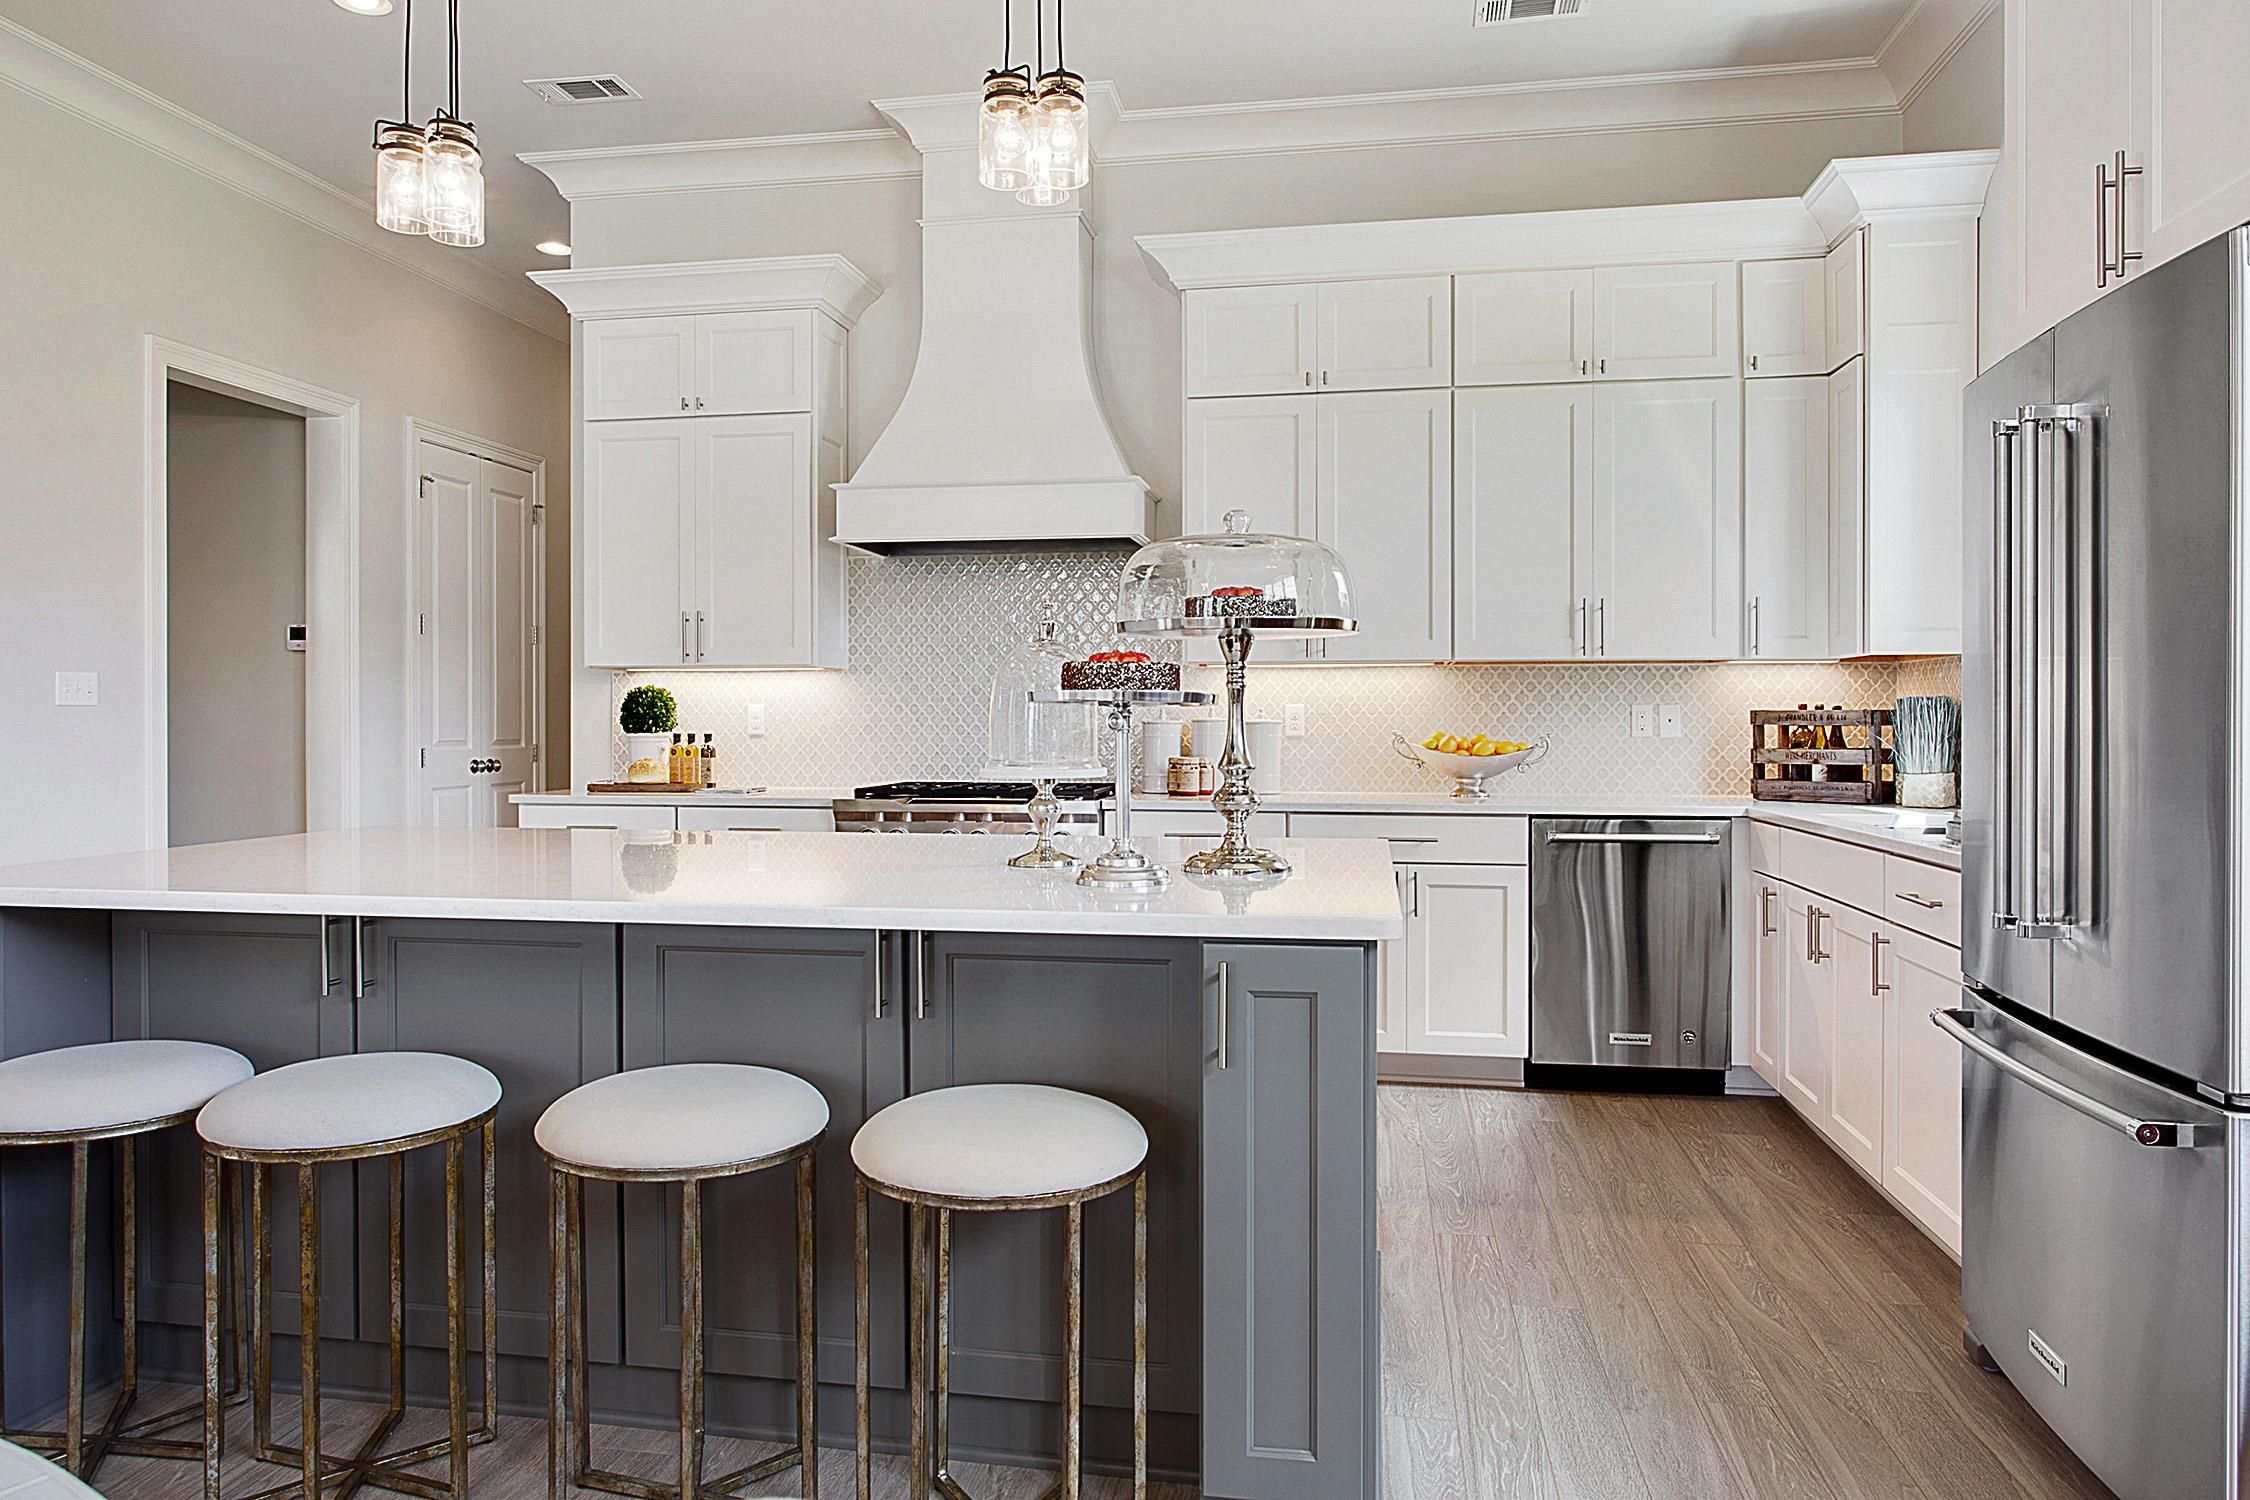 Kitchen featured in the Fountainbleau (3 Bed) By Highland Homes in New Orleans, LA